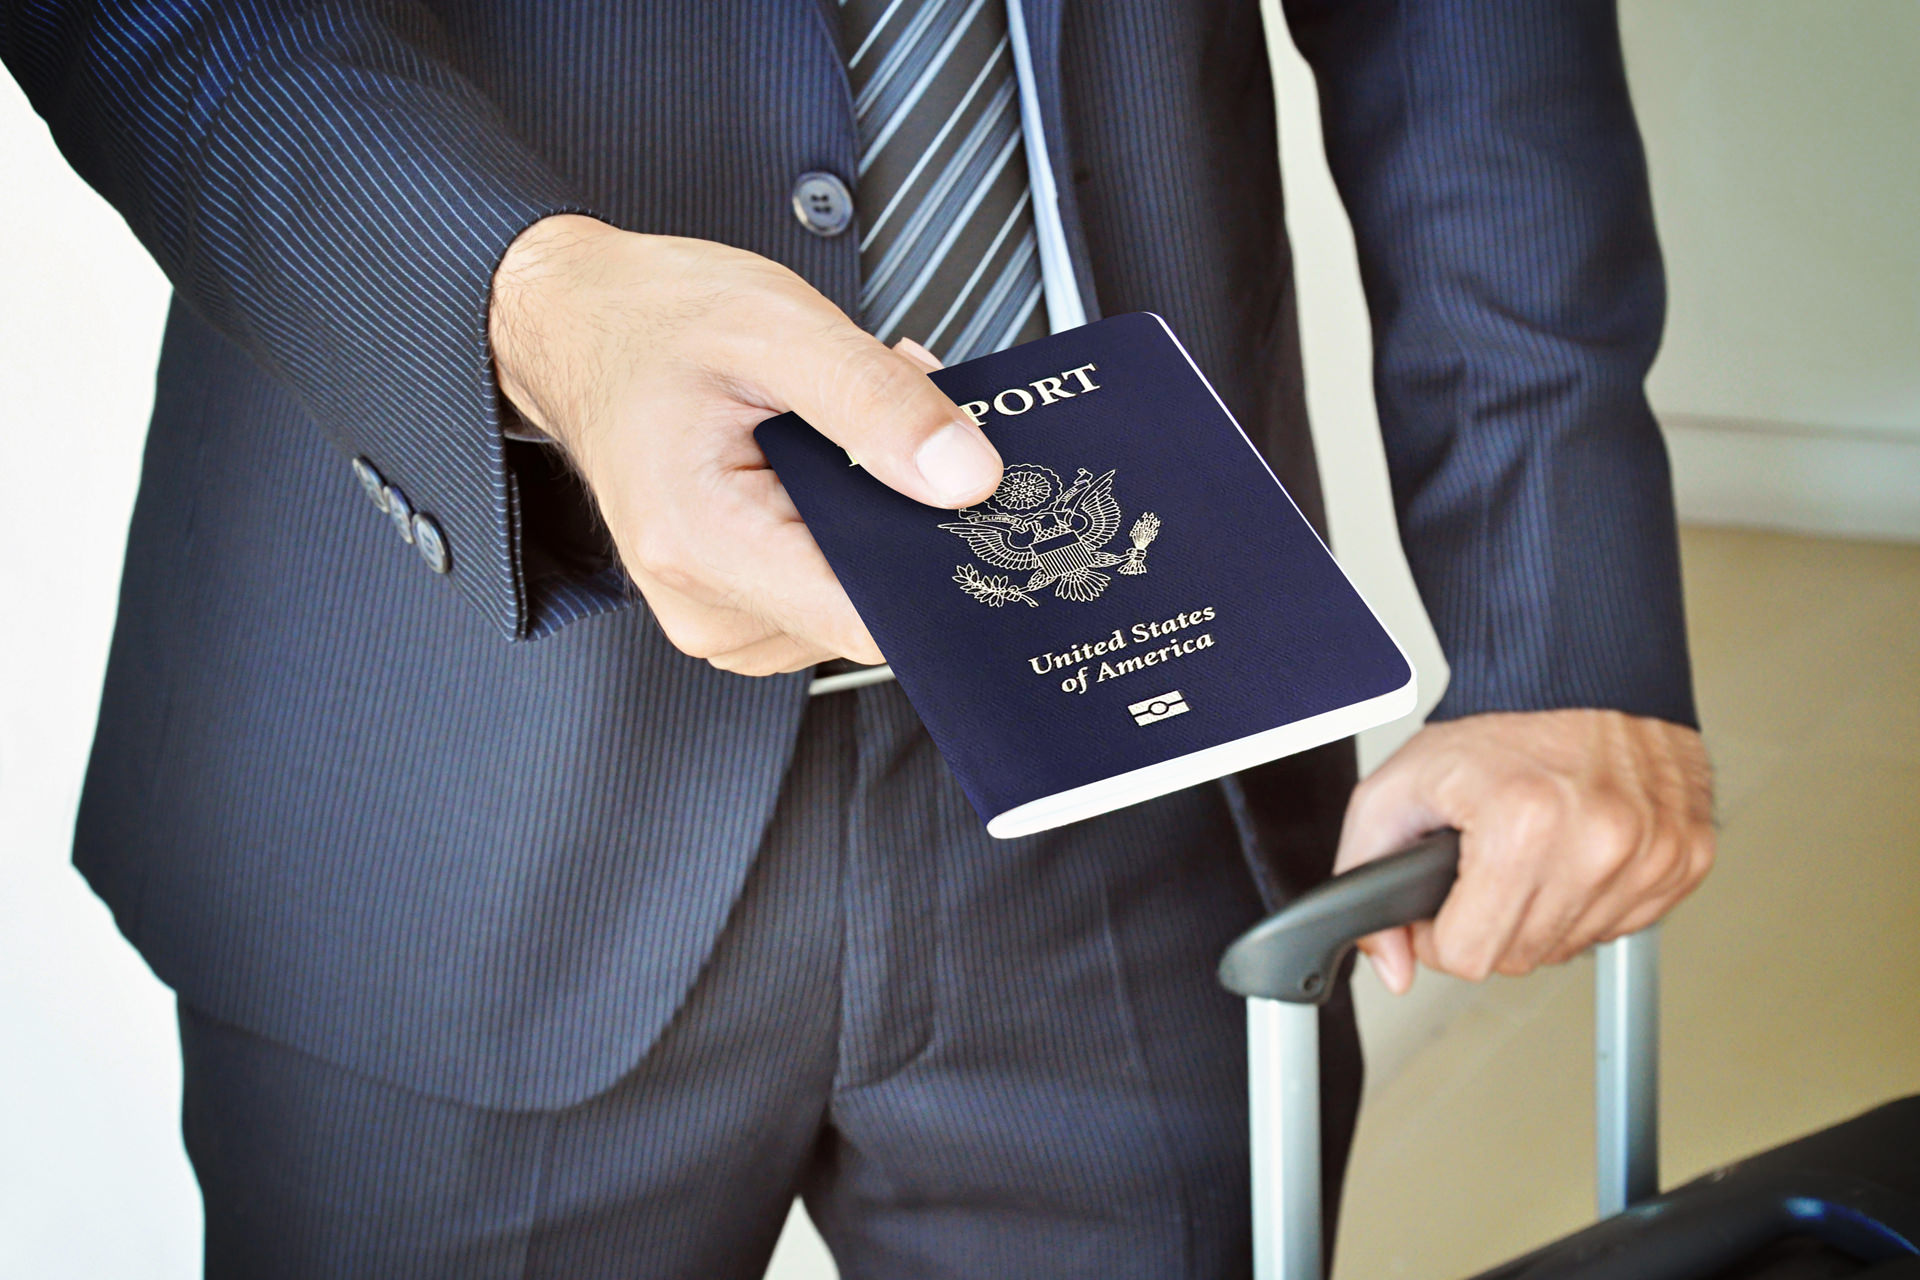 Travel Security Services